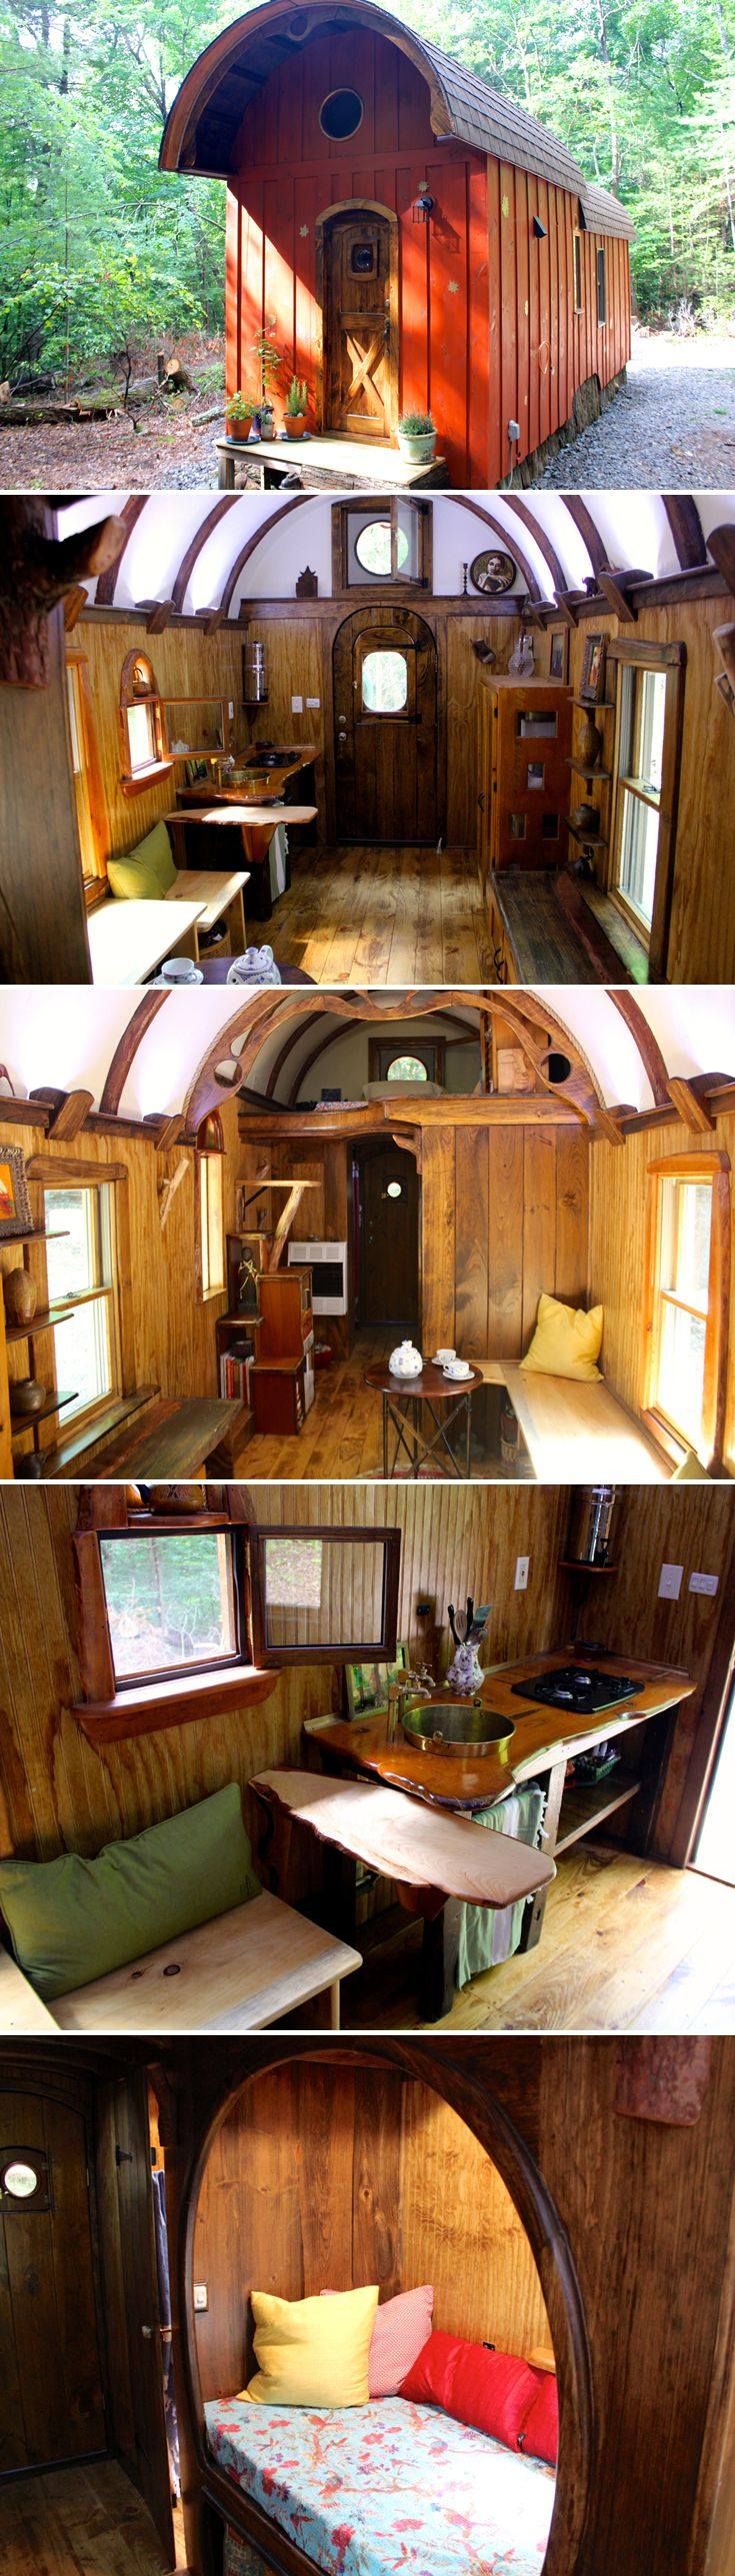 Old Time Caravan - by The Unknown Craftsmen -- a one-of-a-kind tiny house with a curved roof, round windows, live edge maple desk, mahogany storage staircase, and intricate woodwork throughout. : tinyliving